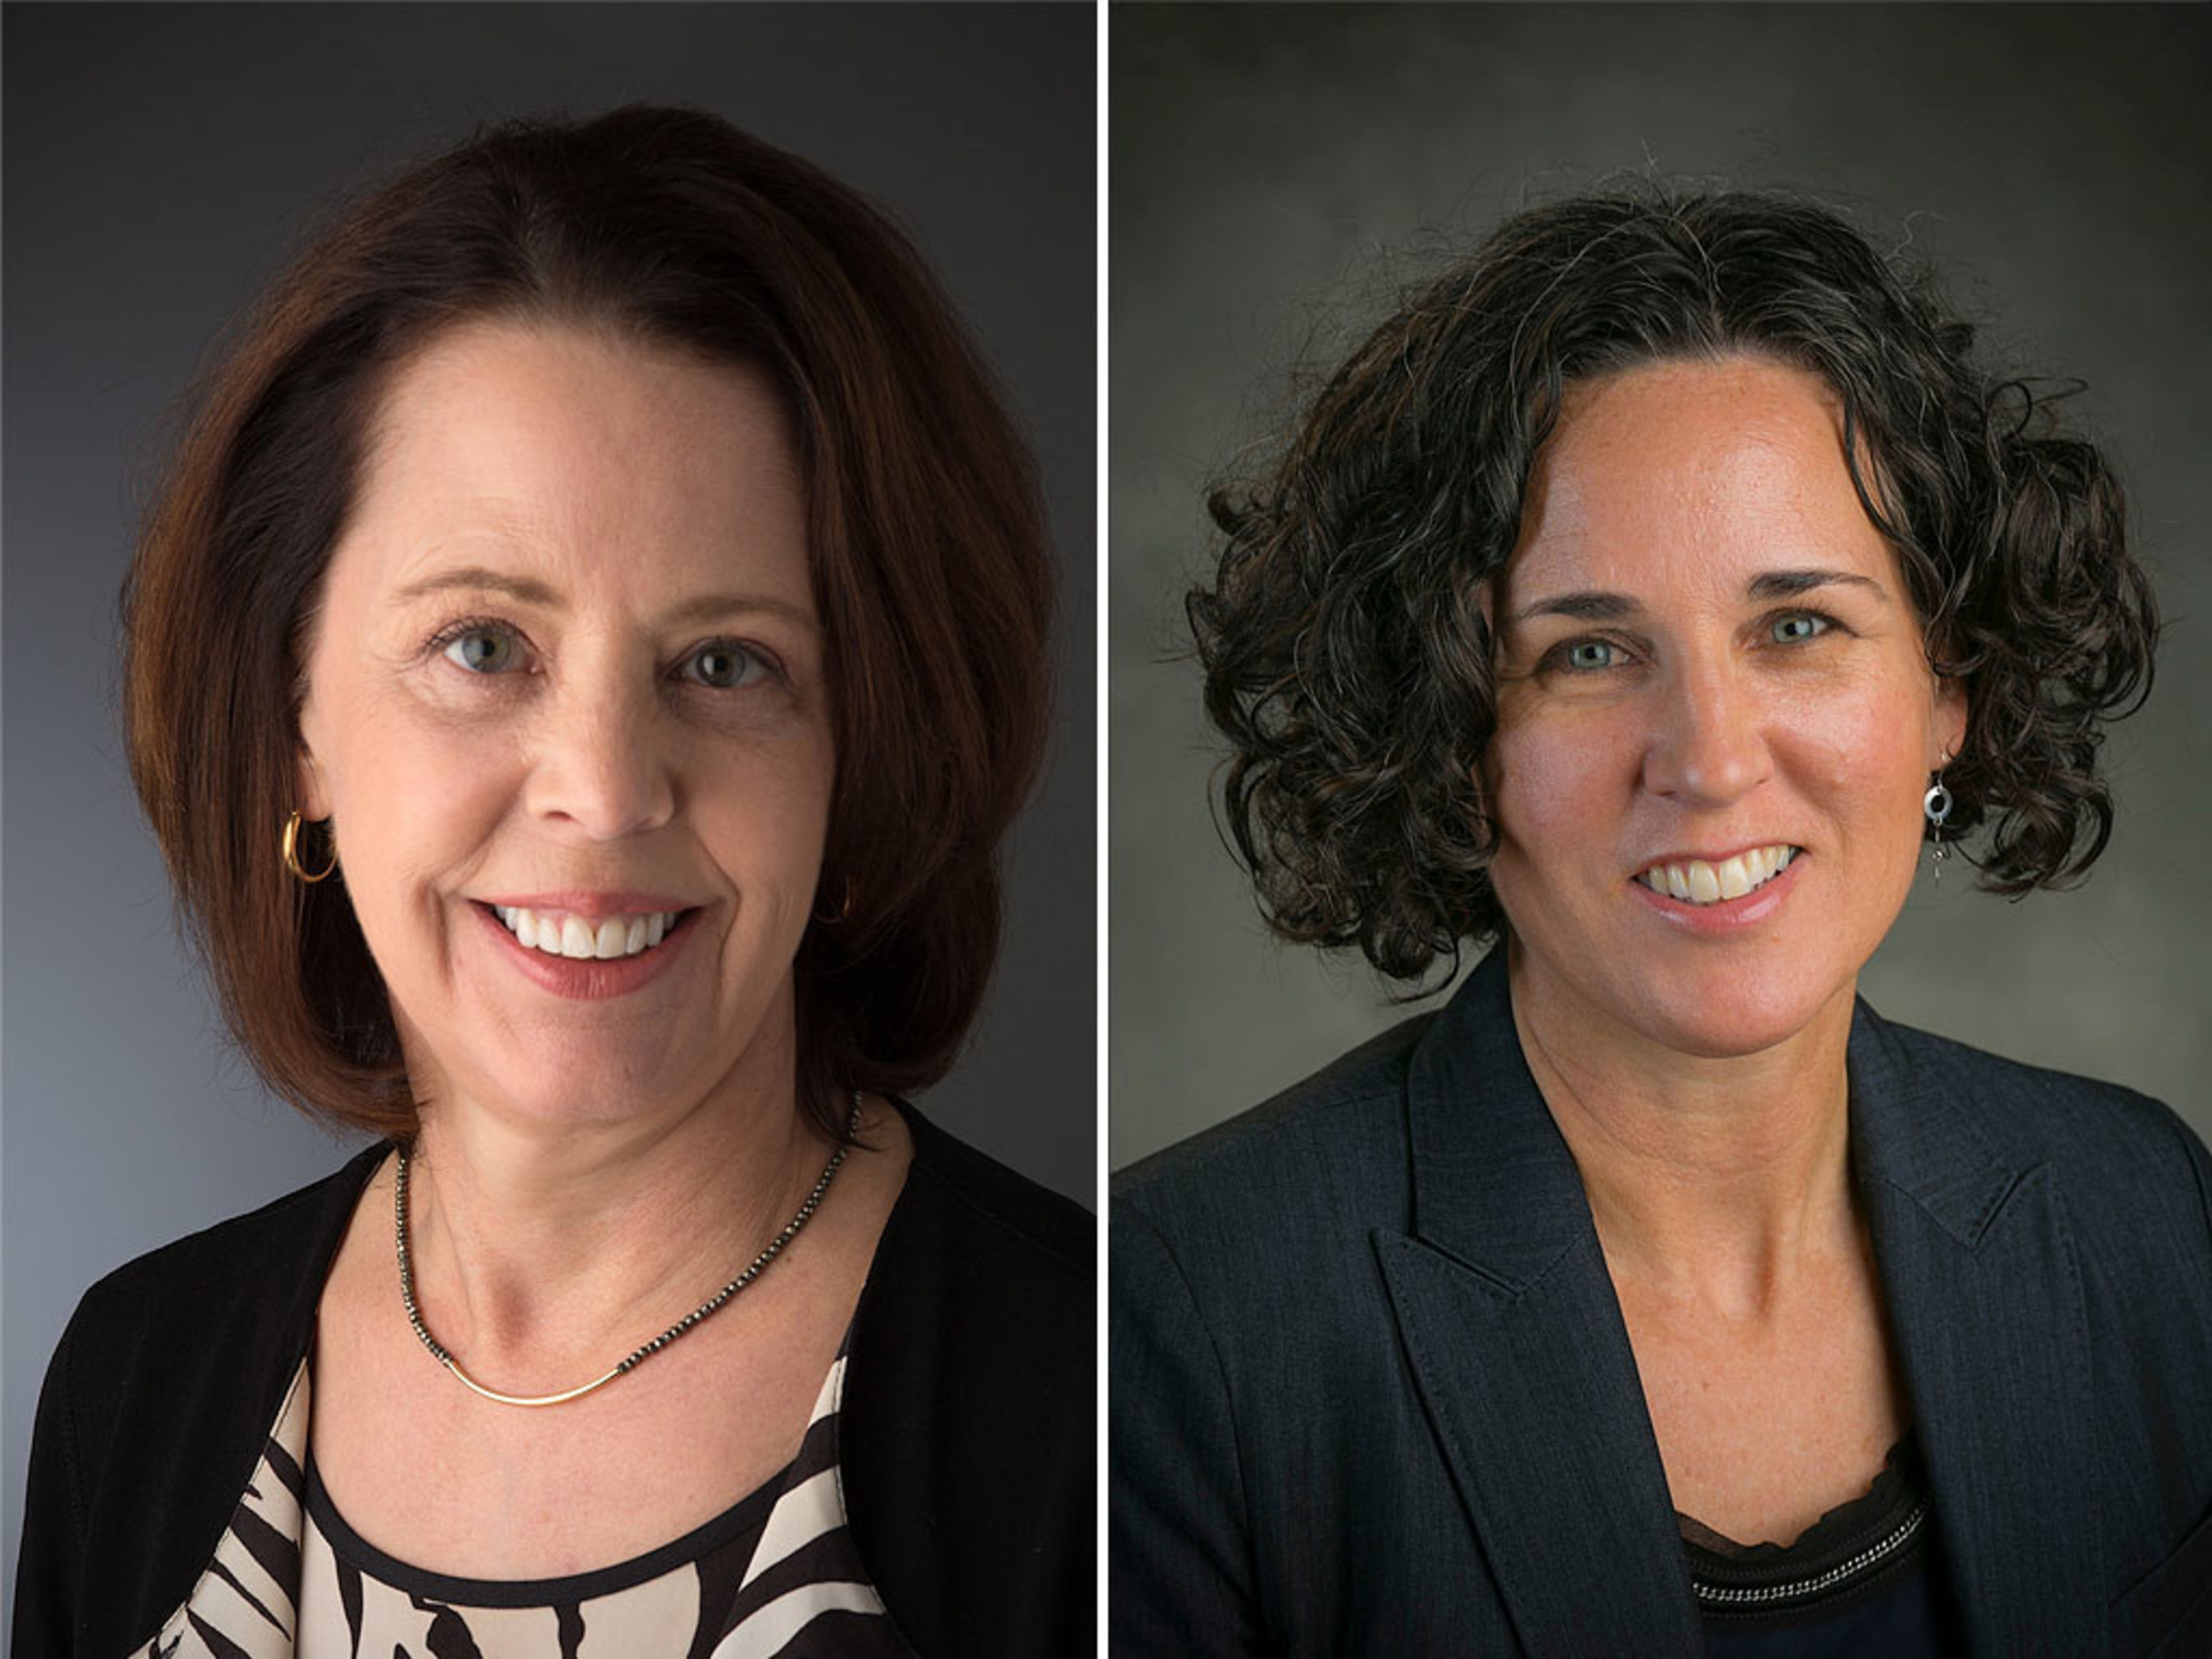 Diana Hess and Paula McAvoy, recipients of the 2017 University of Louisville Grawemeyer Award in Education